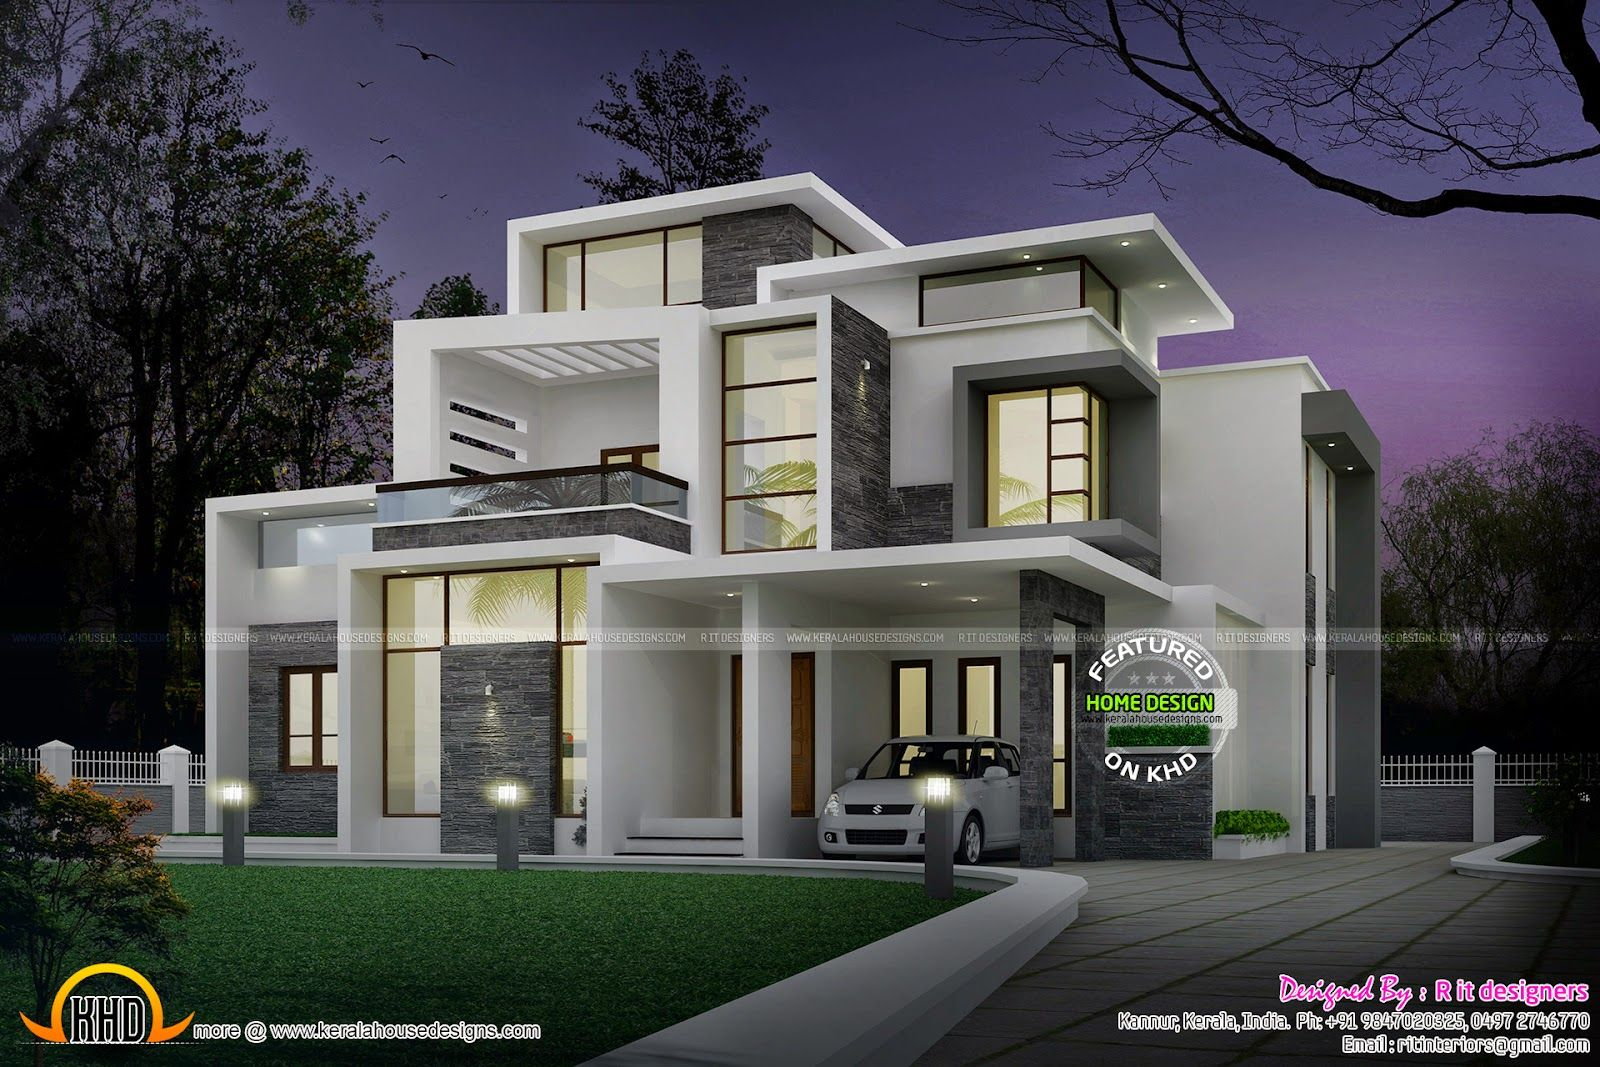 Modern Bungalow Designs India Indian Home Design Plans  APARTMENT LIVING ROOM IDEAS  House